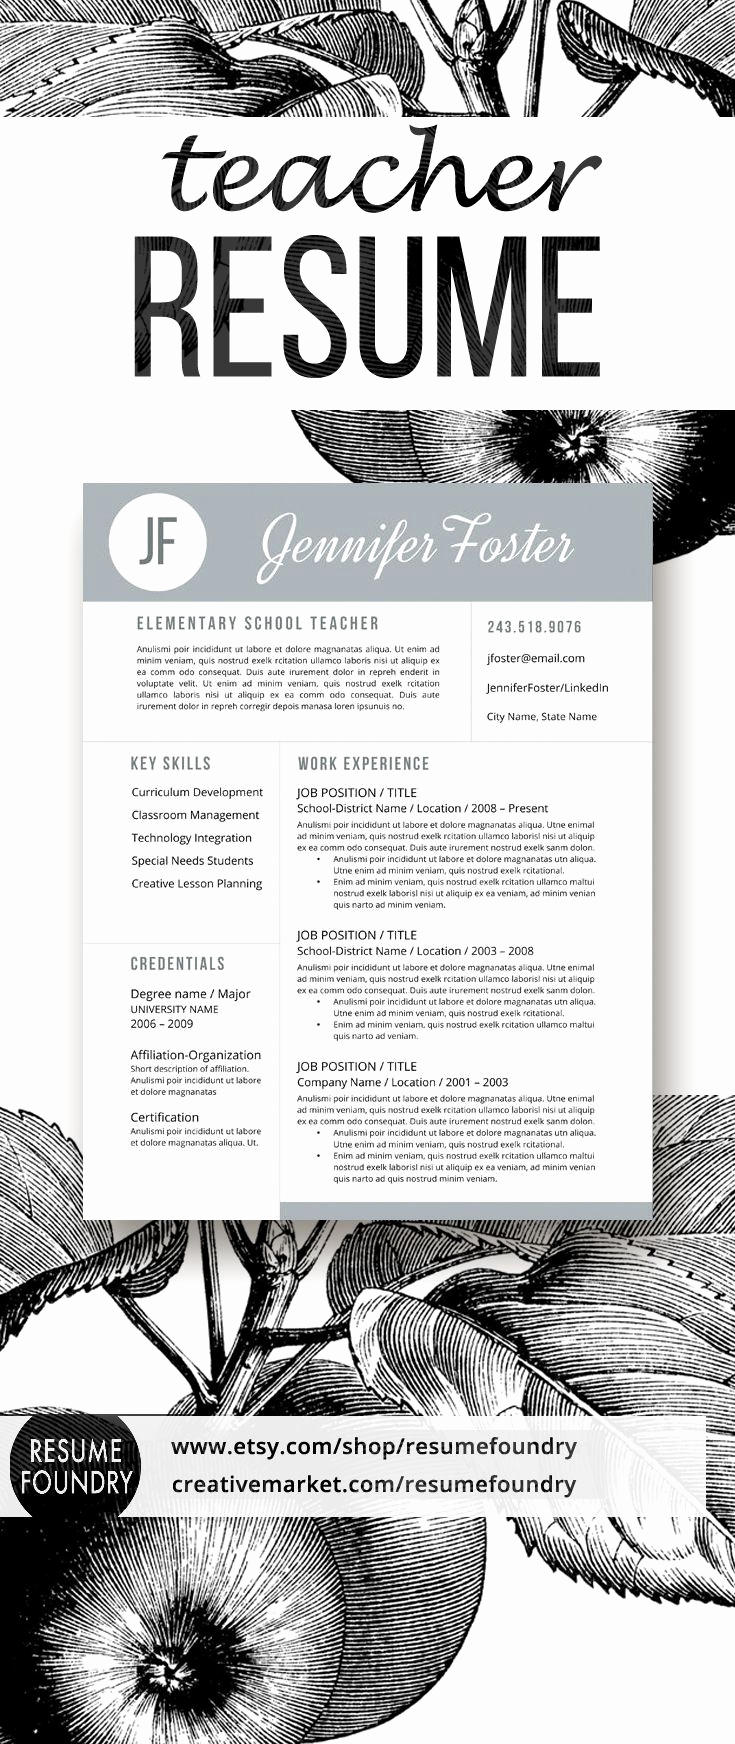 Resume Templates for Teachers Beautiful Best 25 Teacher Resume Template Ideas On Pinterest